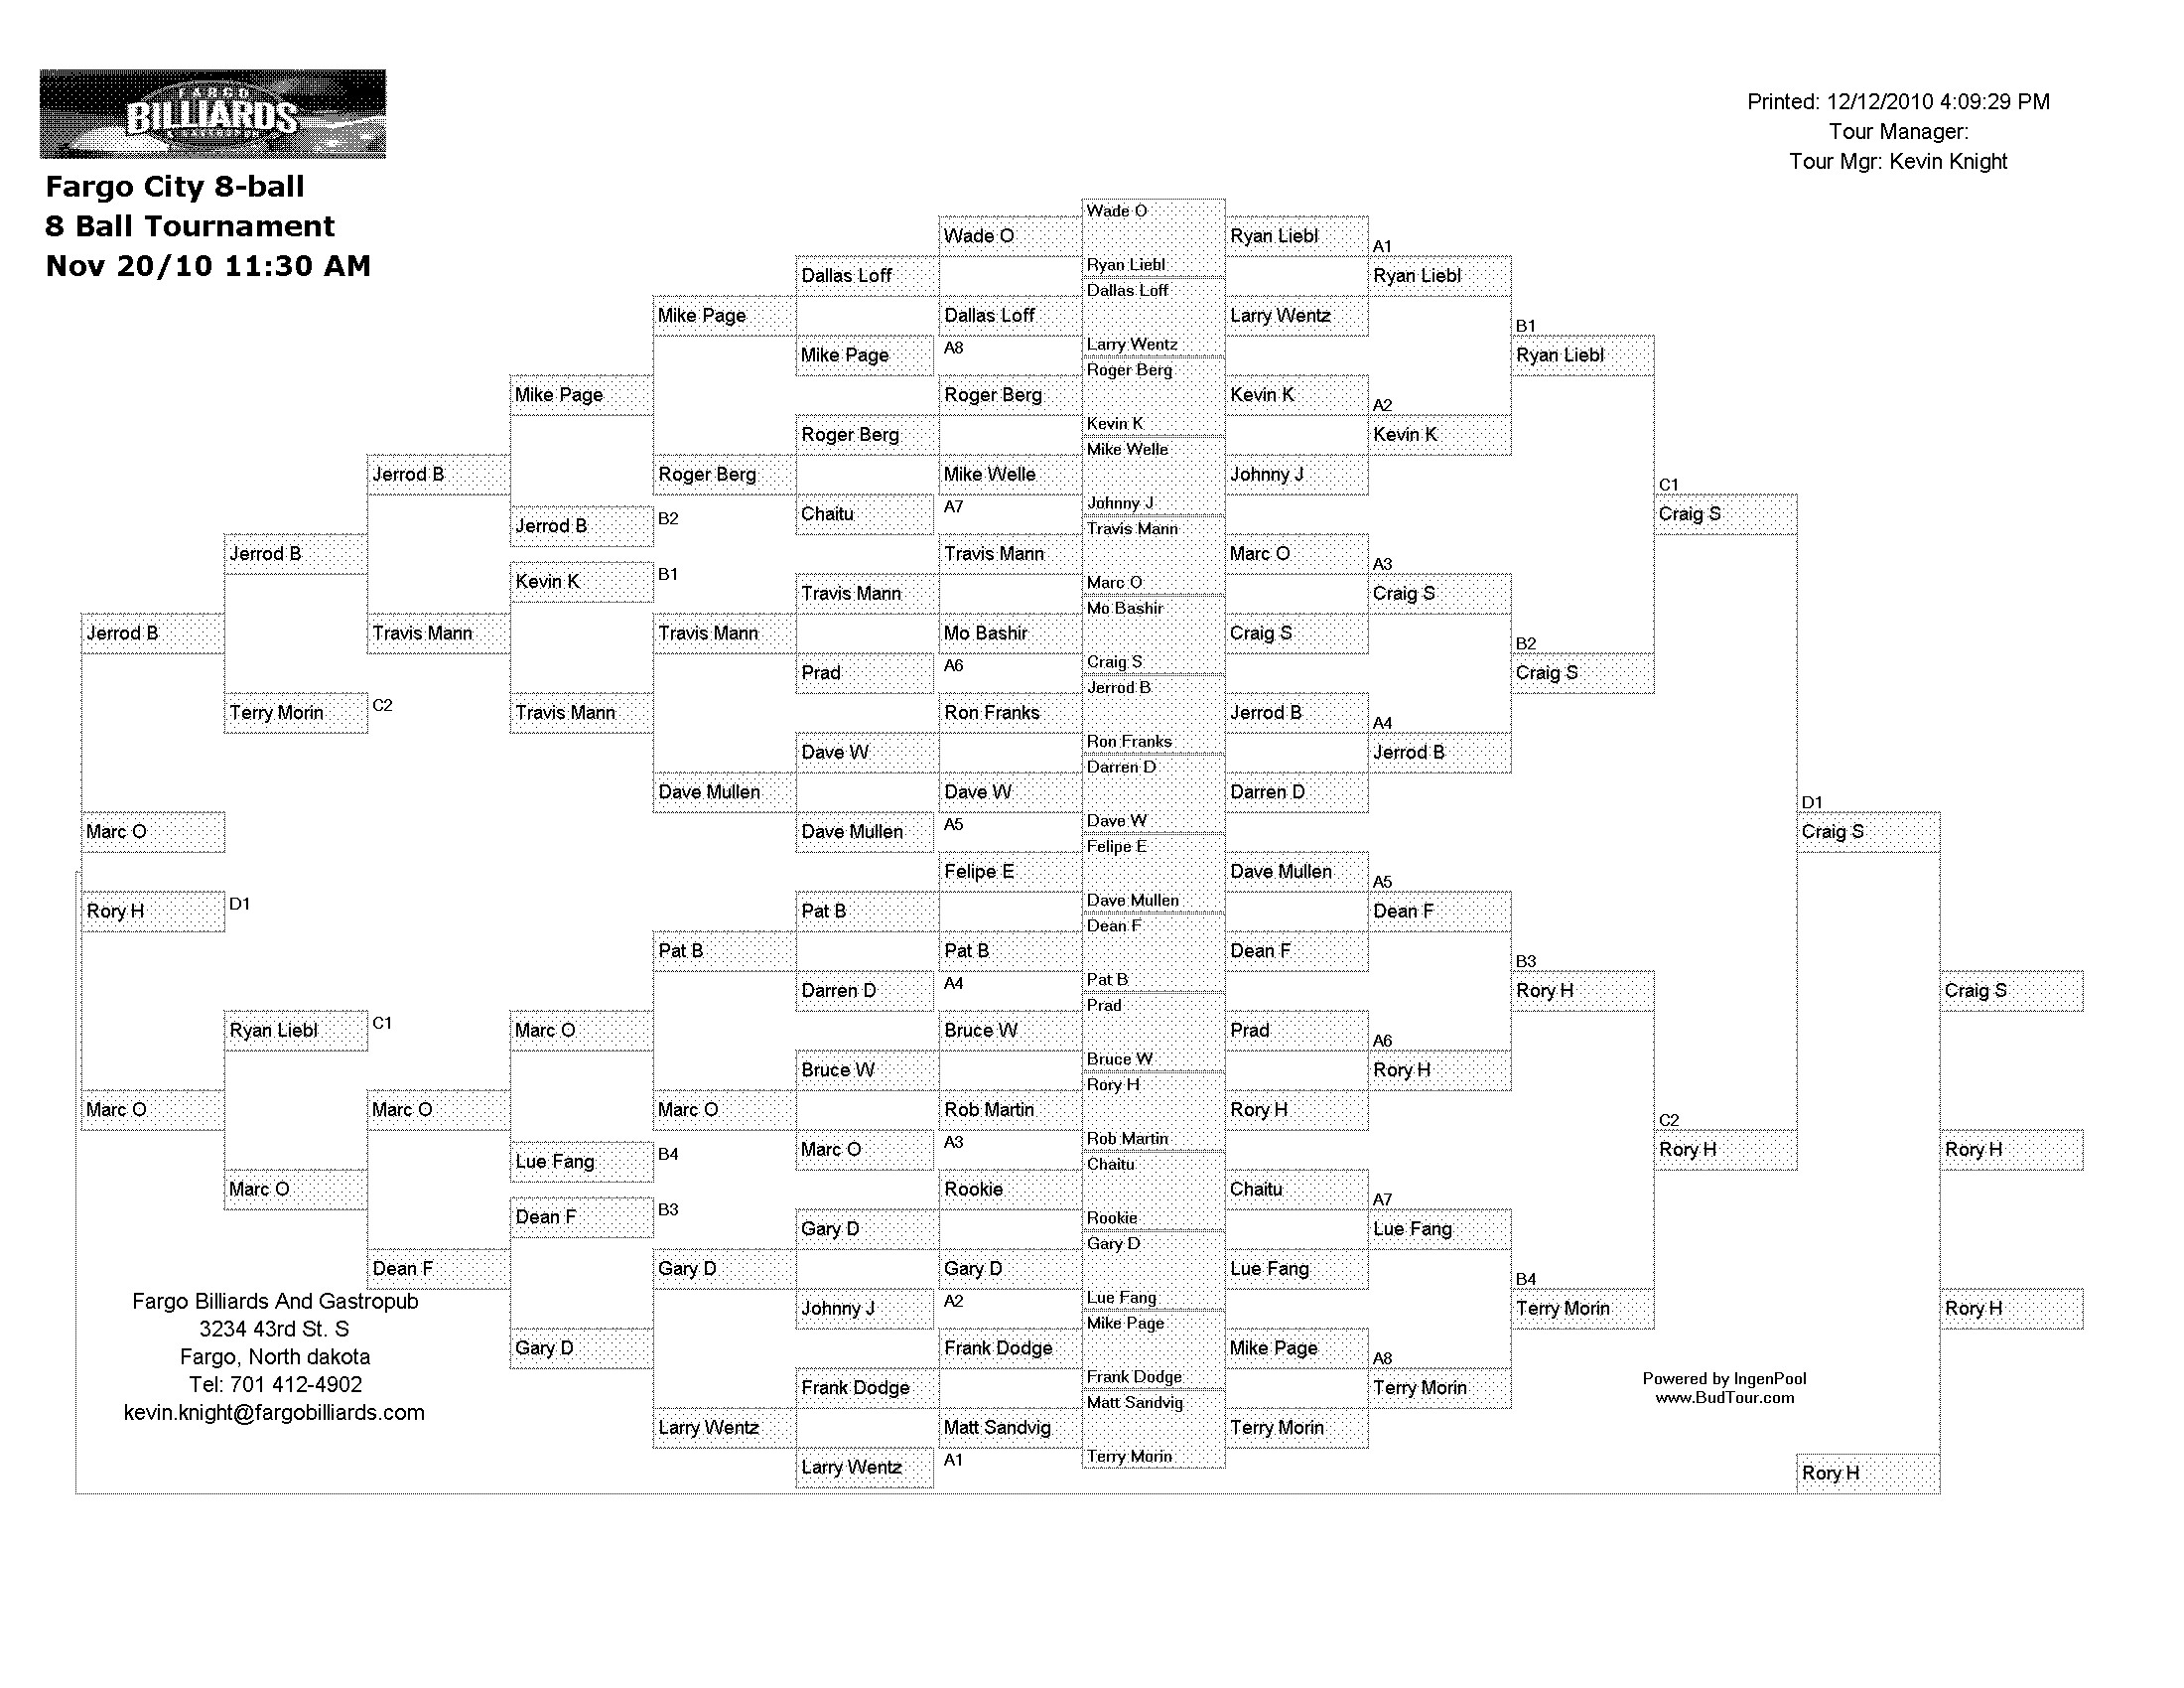 Fargo City 8-ball bracket